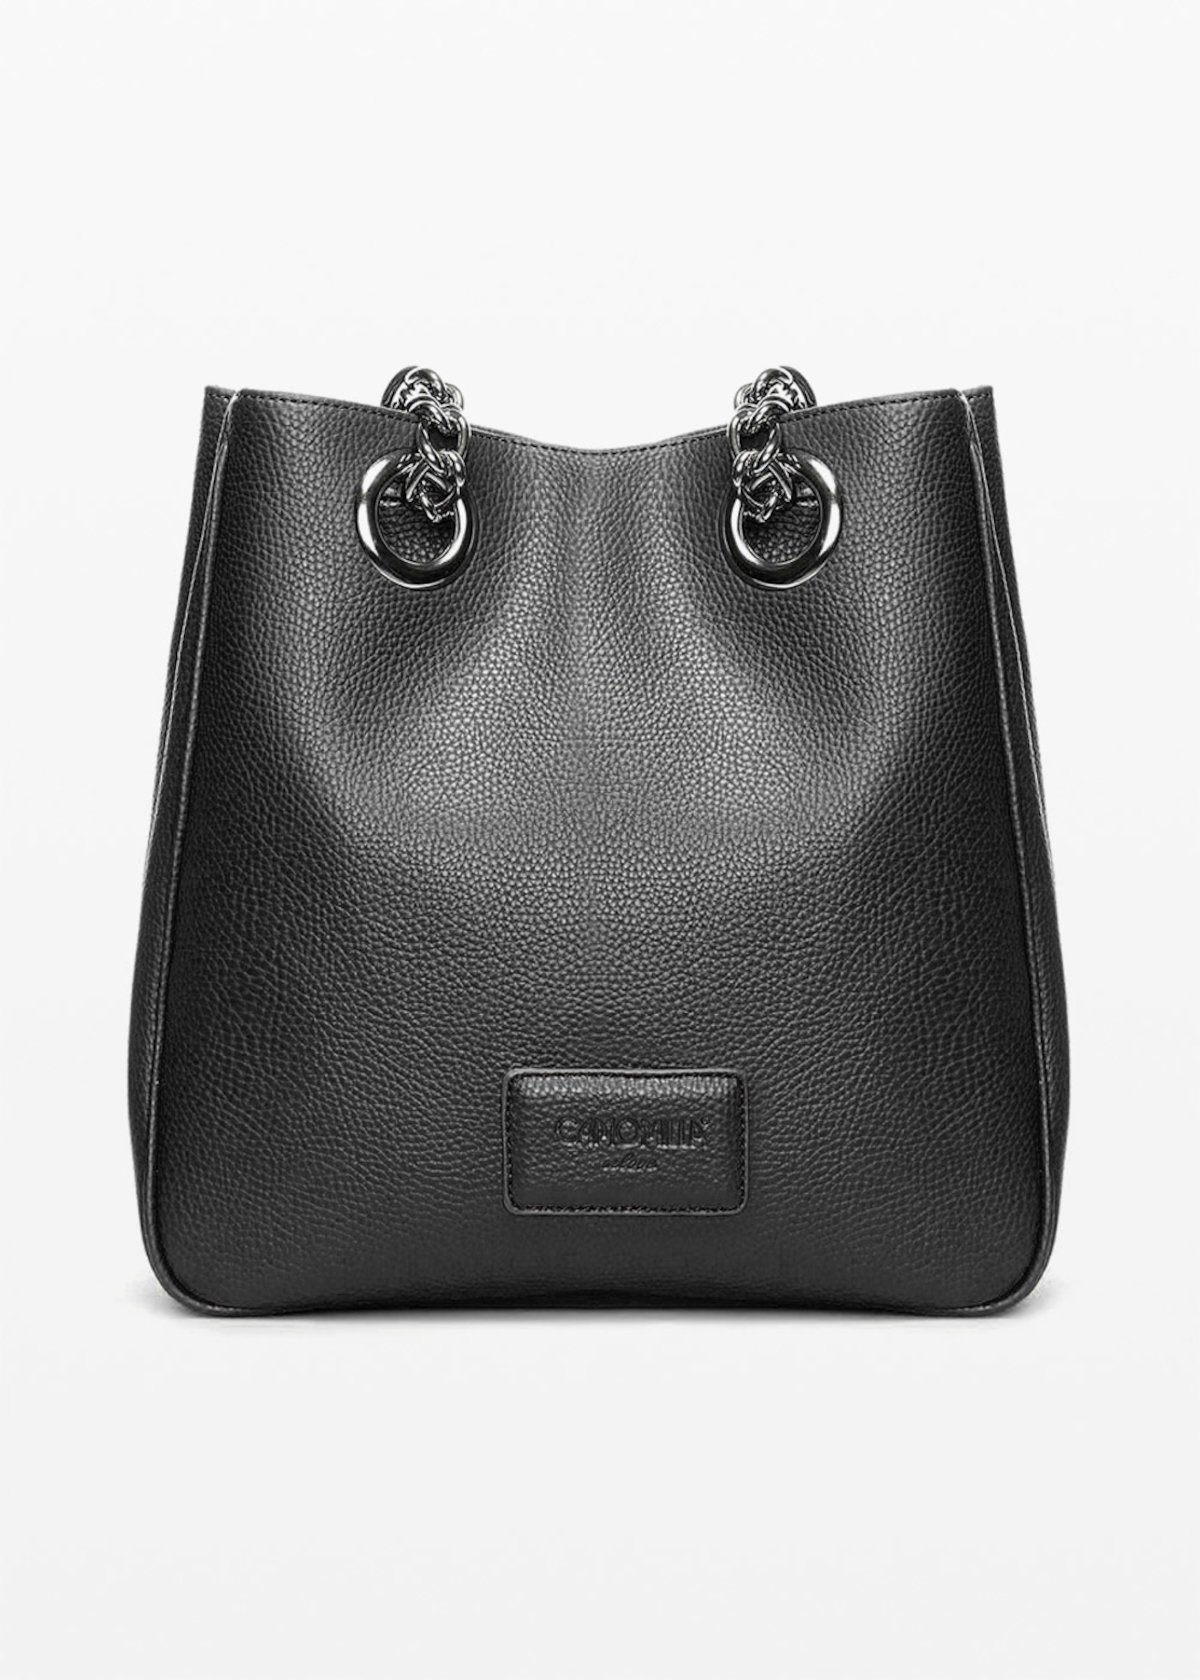 Brend faux leather Shopping bag chain handles and deer print - Black - Woman - Category image